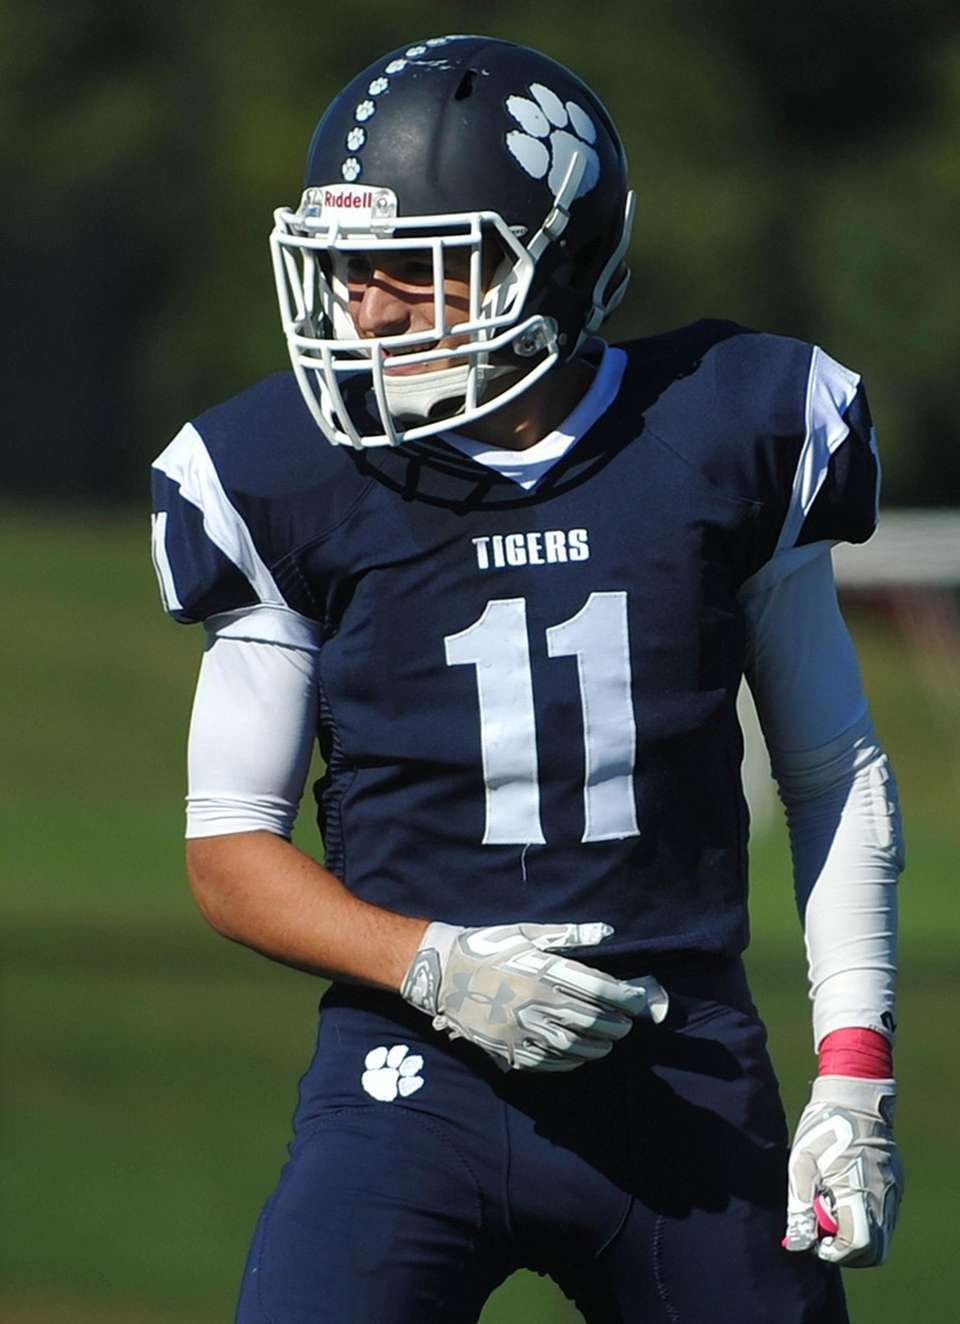 Max Napoli of Northport reacts after making an